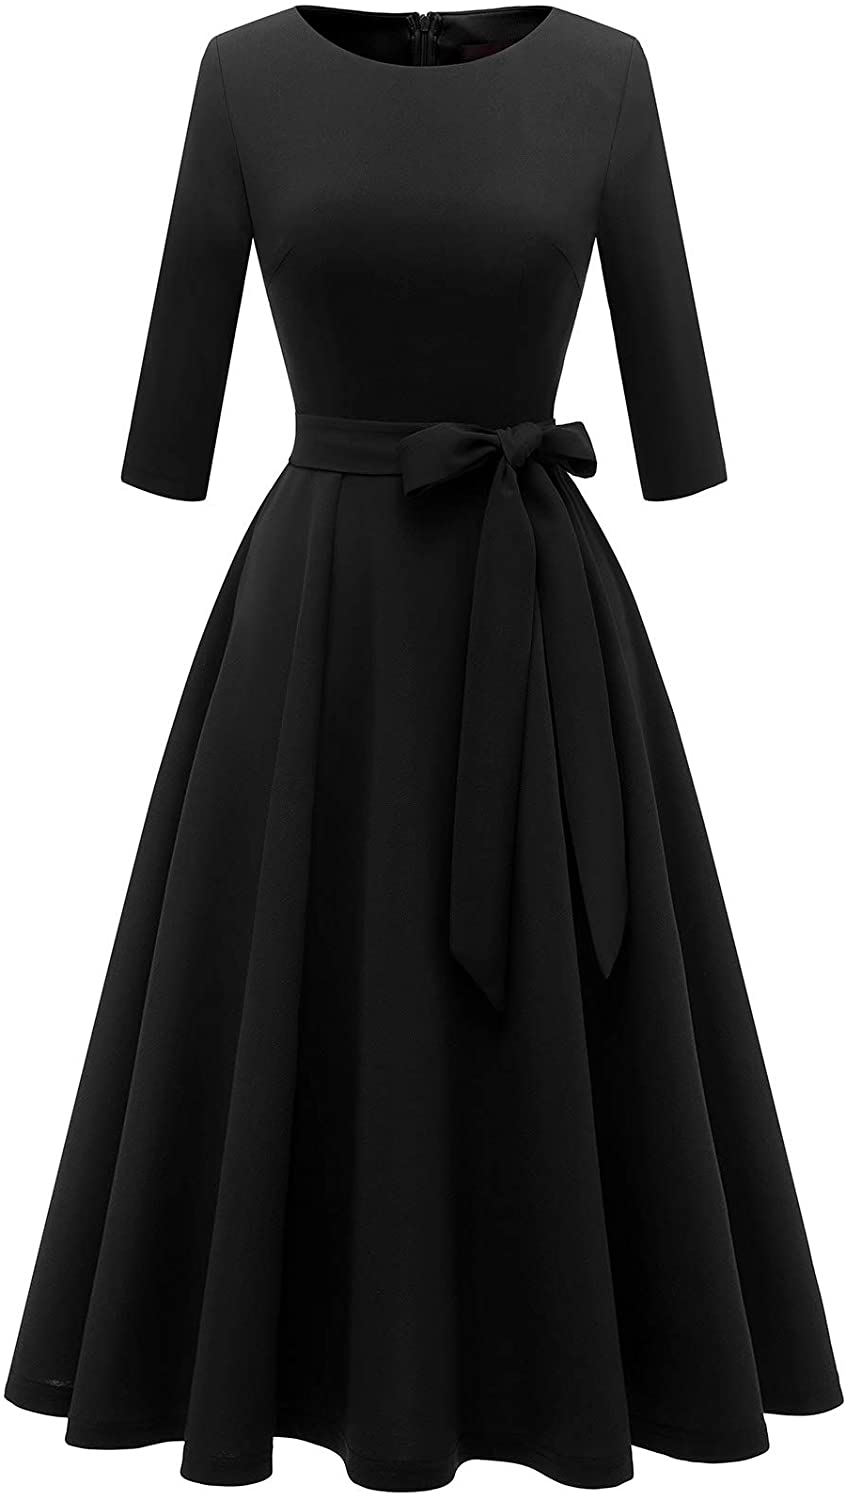 Women Prom Tea Dress Vintage Swing 4 Sl 67% OFF of fixed price Spring Trust 3 Cocktail